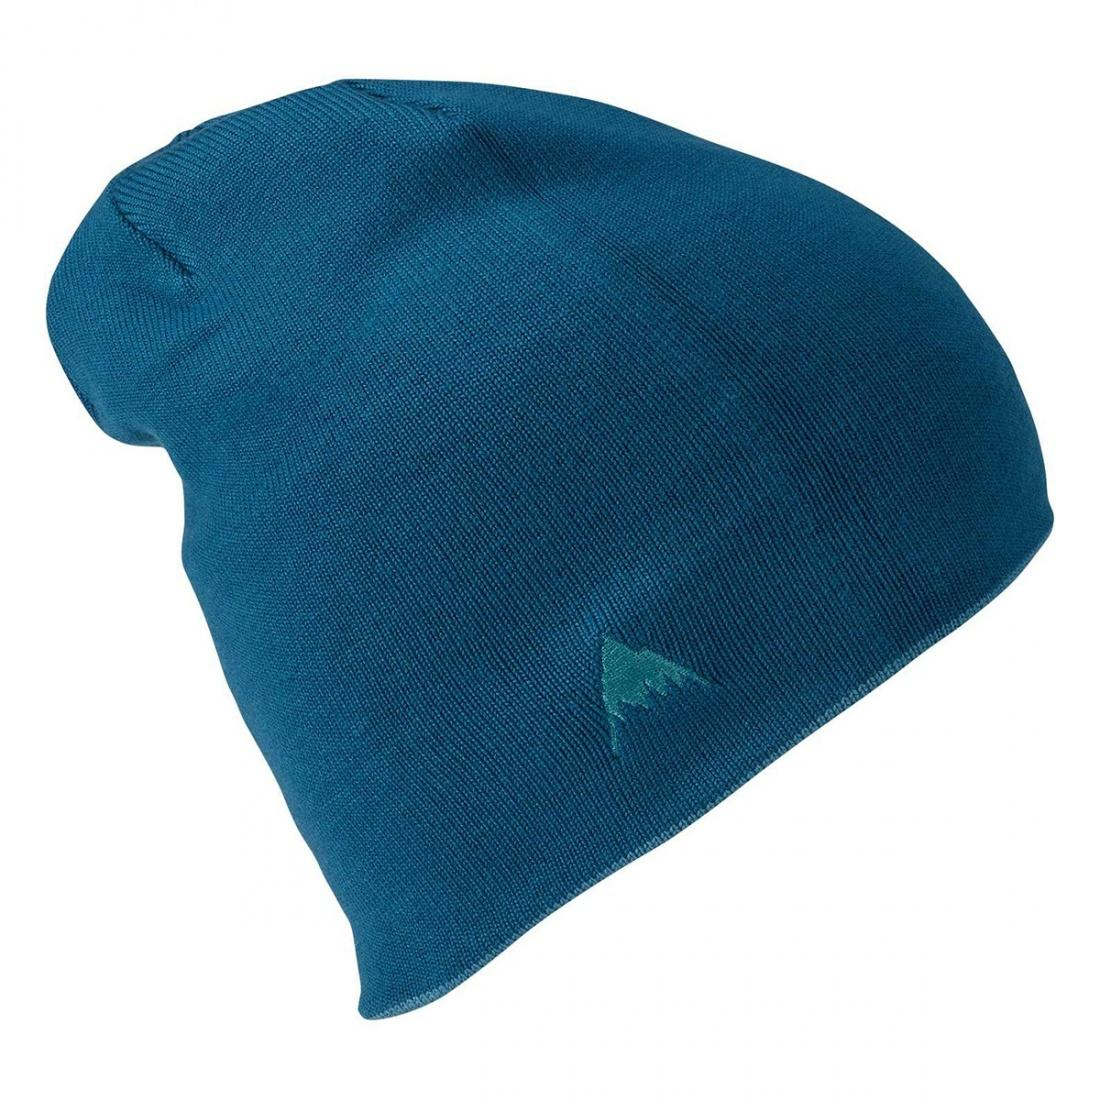 Burton Шапка Burton Belle Beanie Reversible JADED/LAKSPU, , , FW18 One size лонгслив спортивный burton burton bu007emzen42